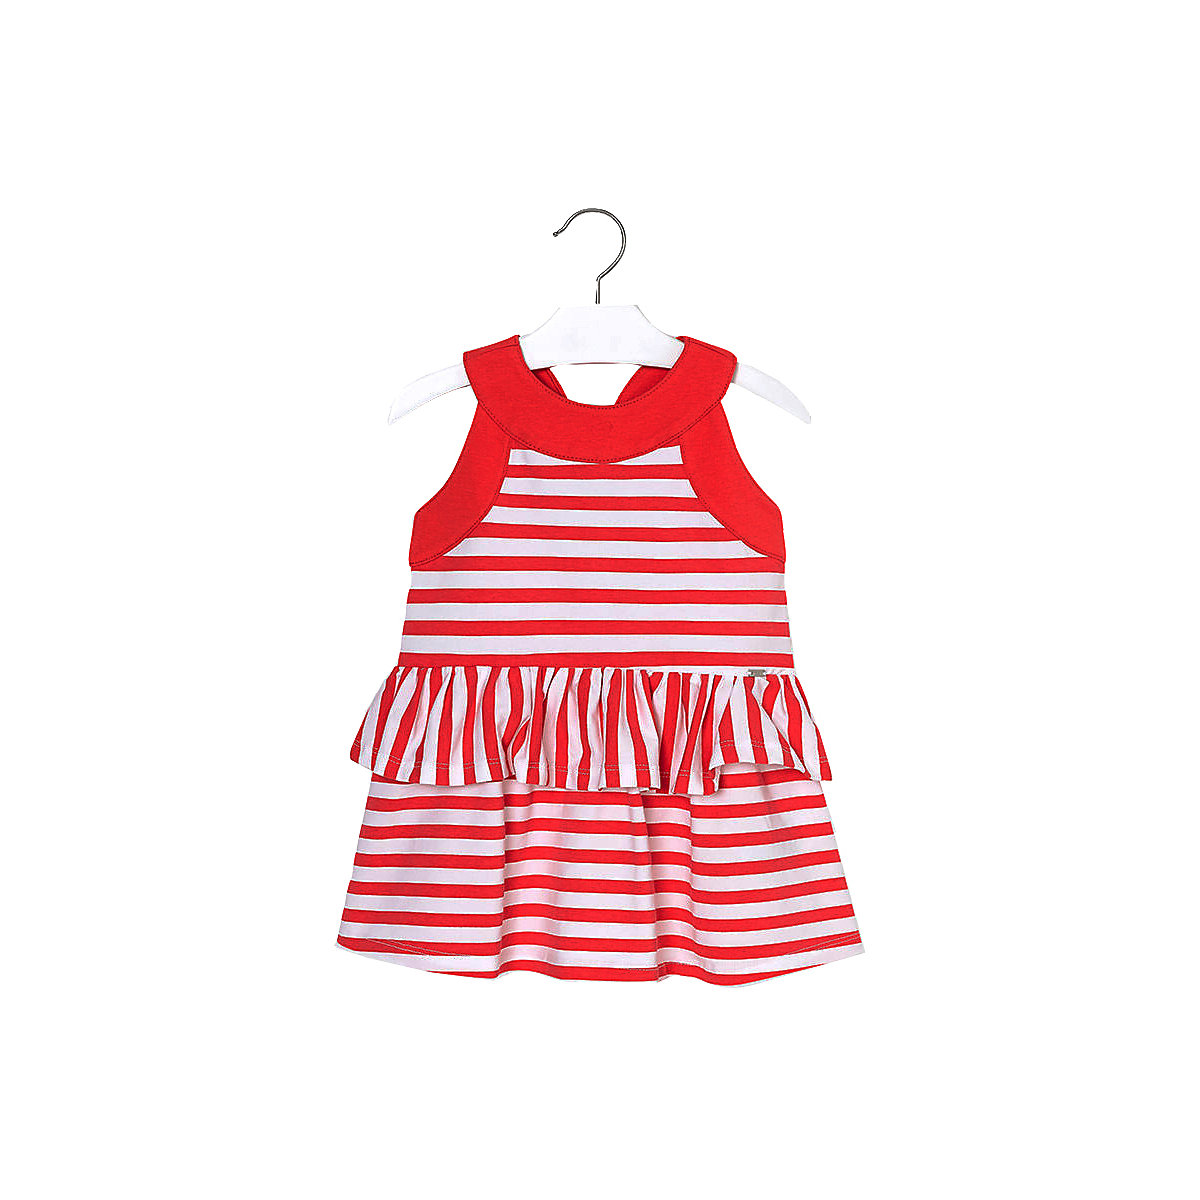 MAYORAL Dresses 10881603 Girl Children fitted pleated skirt Red Cotton Casual Striped Knee-Length Sleeveless Sleeve striped raglan sleeve floral tee